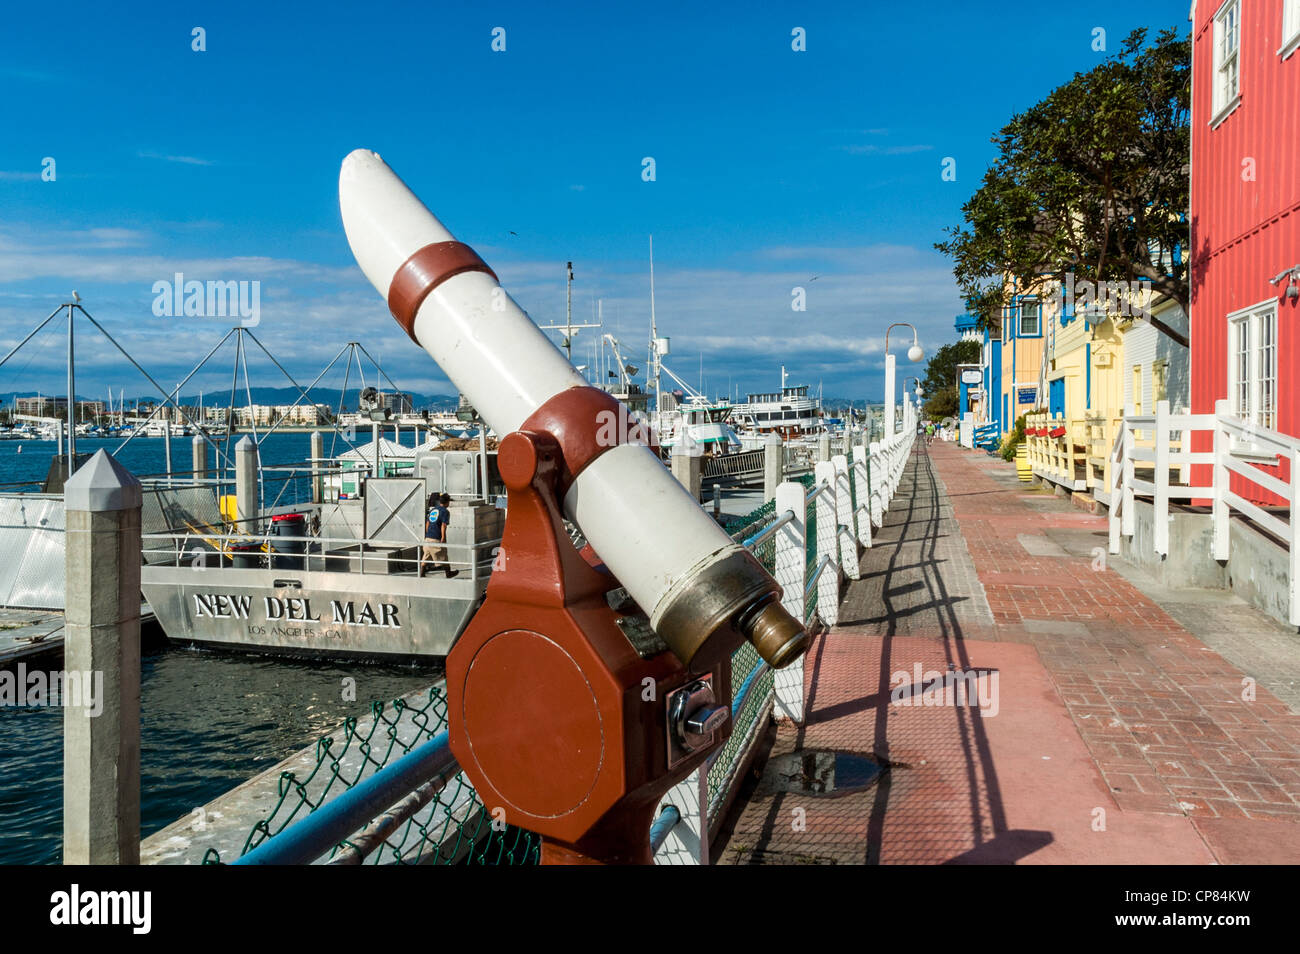 Coin operated Telescope at Marina del Rey, California, USA - Stock Image